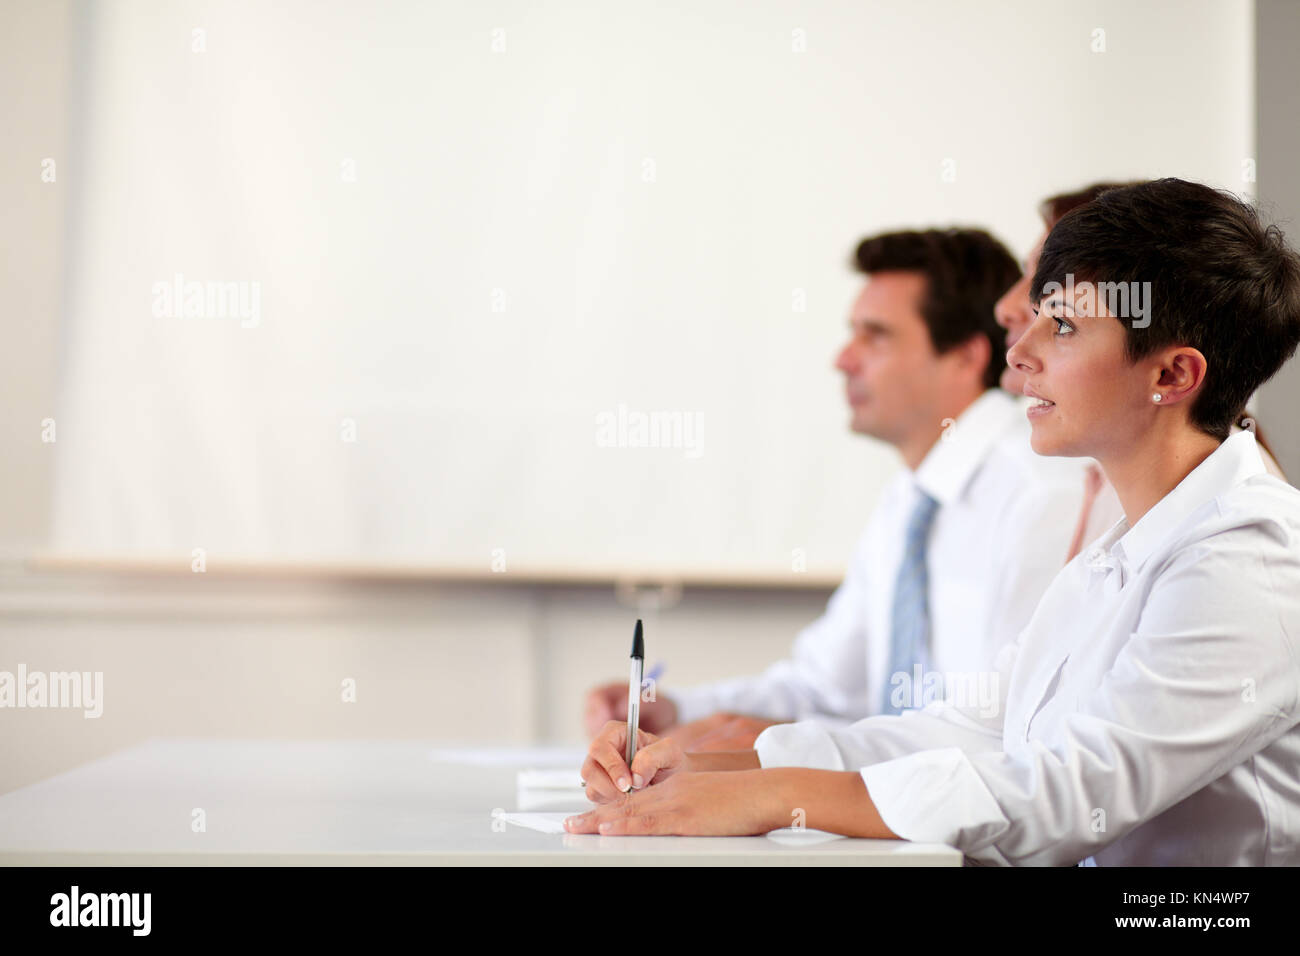 Portrait of a pretty hispanic executive looking at presentation in front of a coworker on office background - copyspace. - Stock Image